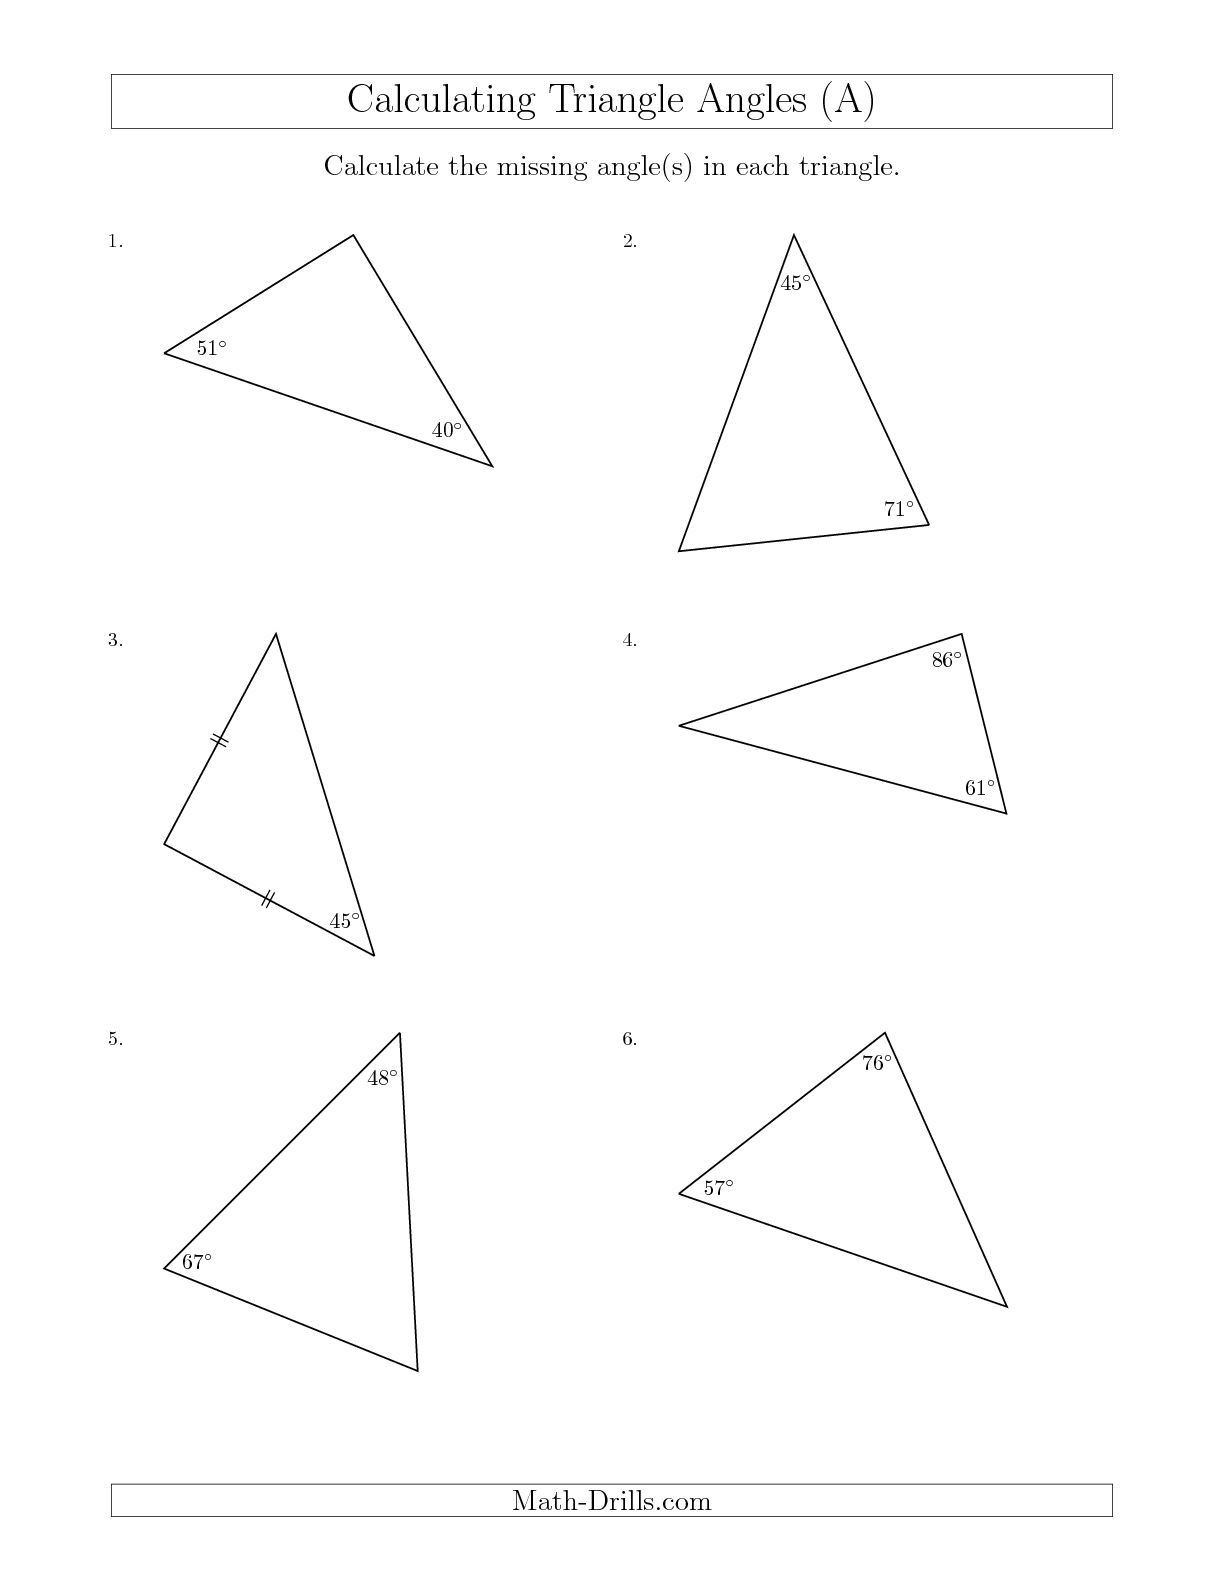 Finding Missing Angles Worksheet New Calculating Angles Of A Triangle Given the Other Angle